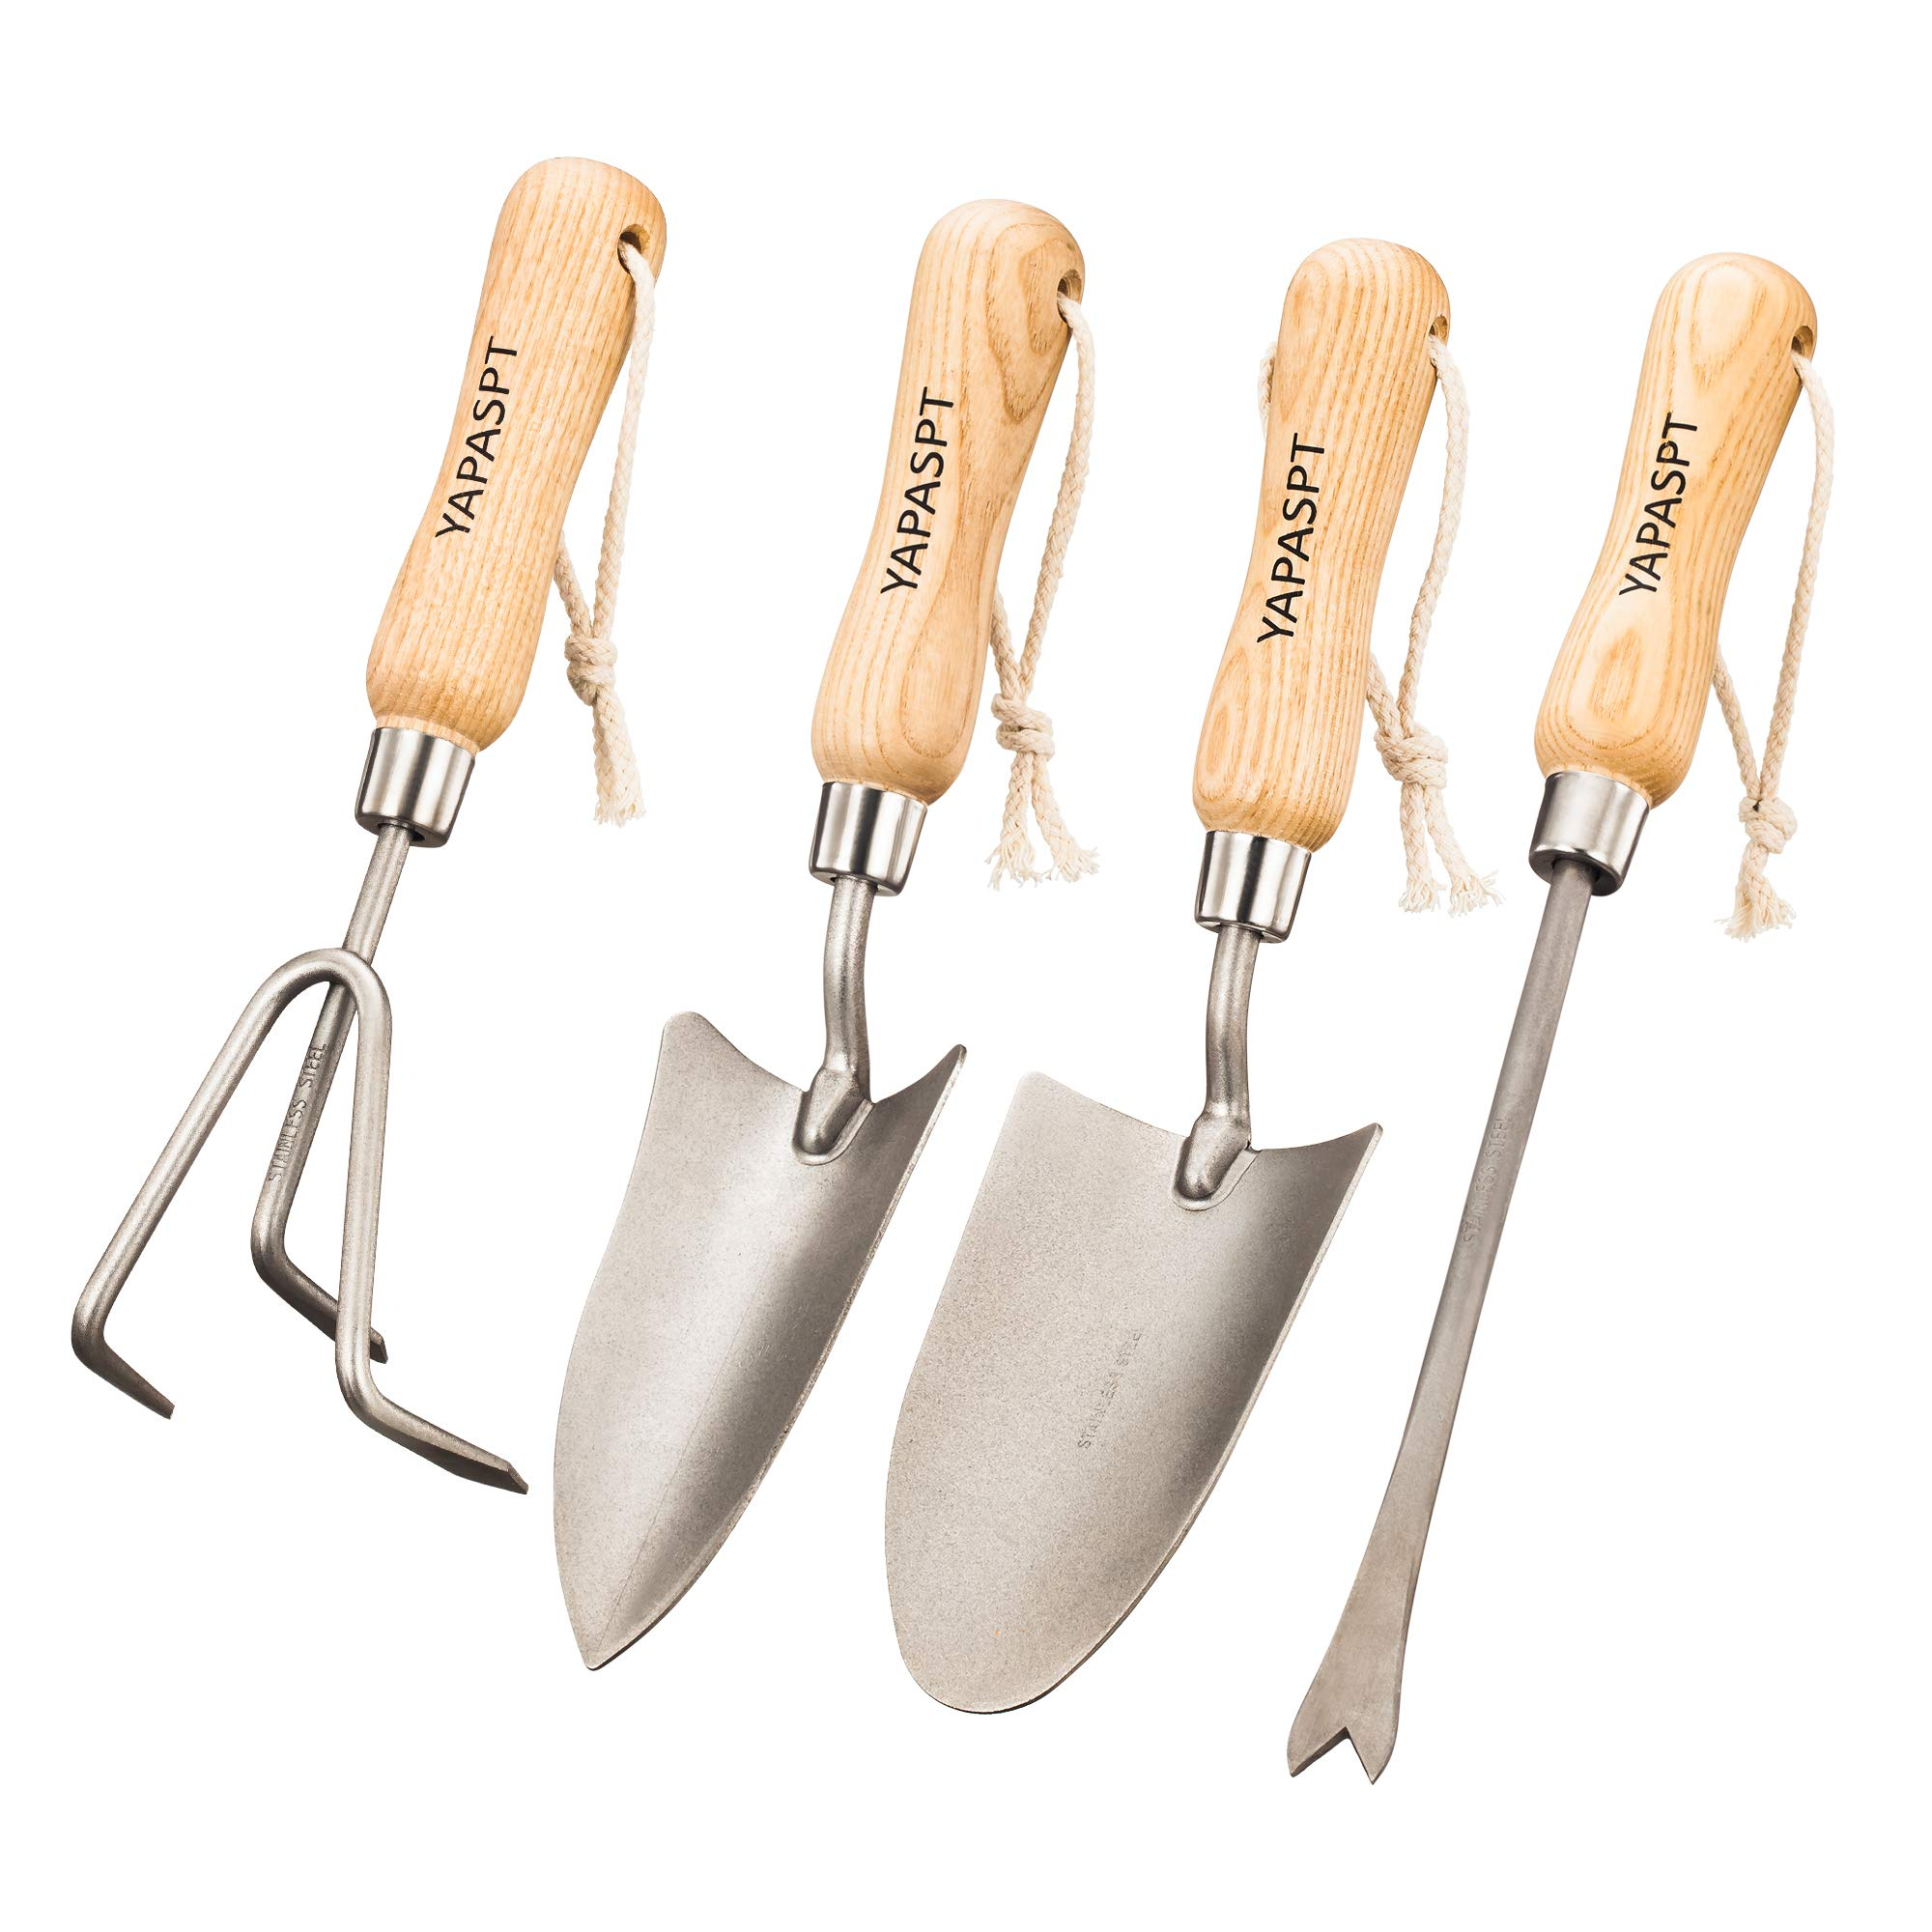 YAPASPT Gardening Tools - 4 Piece Heavy Duty Garden Hand Kit - Rust Resistant Garden Tool Sets with Trowel Cultivator Weeder for Flower and Vegetable Plants Care by YAPASPT